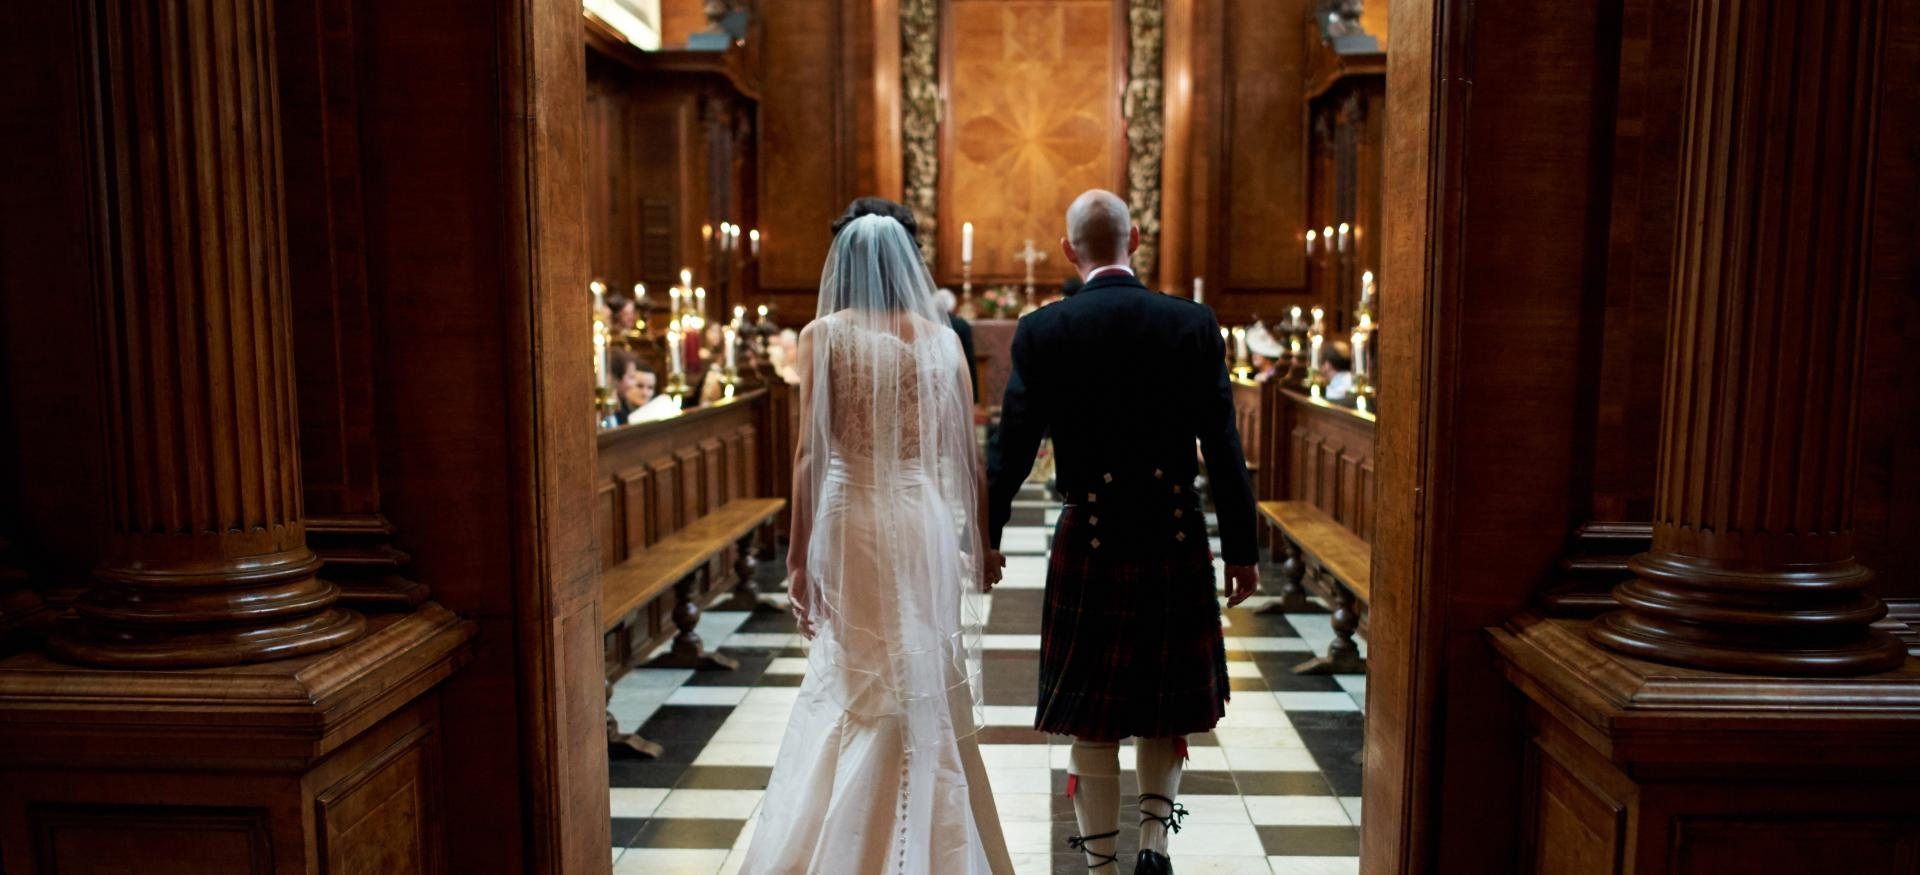 A bride and groom walk into the Trinity College chapel during a wedding service.